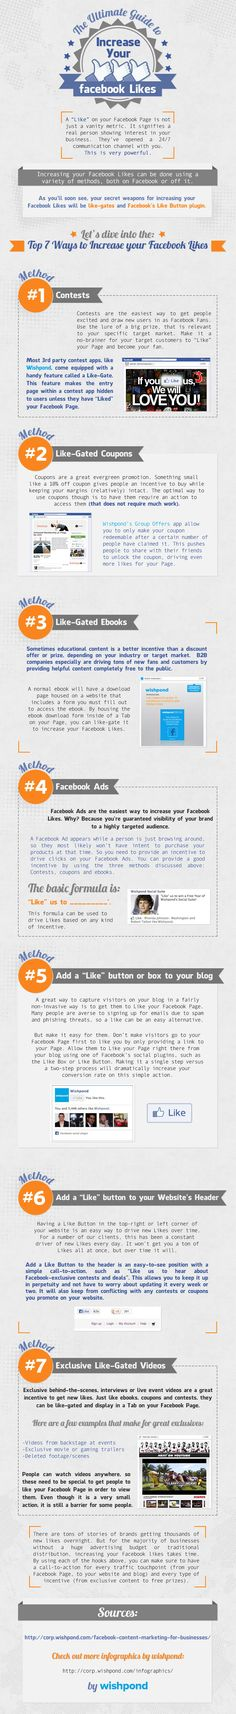 Get More Facebook Likes for your Business #socialmedia #ecommerce